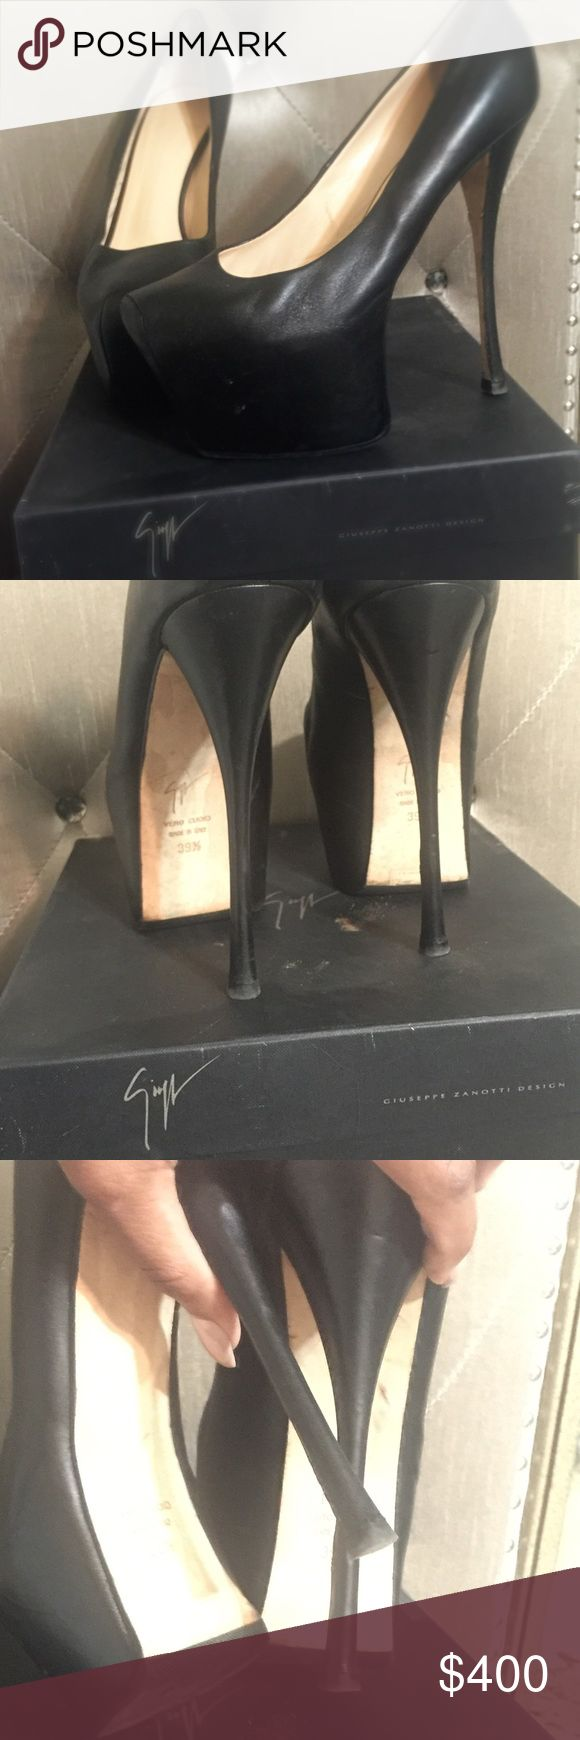 """Giuseppe Zanotti Cleaning out my closet!! All items are 100% authentic!! I don't wear, sell, or purchase """"inspired"""" items!!!!! Dust bag included! Soles are black rubberized by Leather spa, NY! Serious inquiries ONLY! Additional photos available upon request! Size 39 1/2 (9 1/2B) fits true to size will negotiate Giuseppe Zanotti Shoes Heels"""